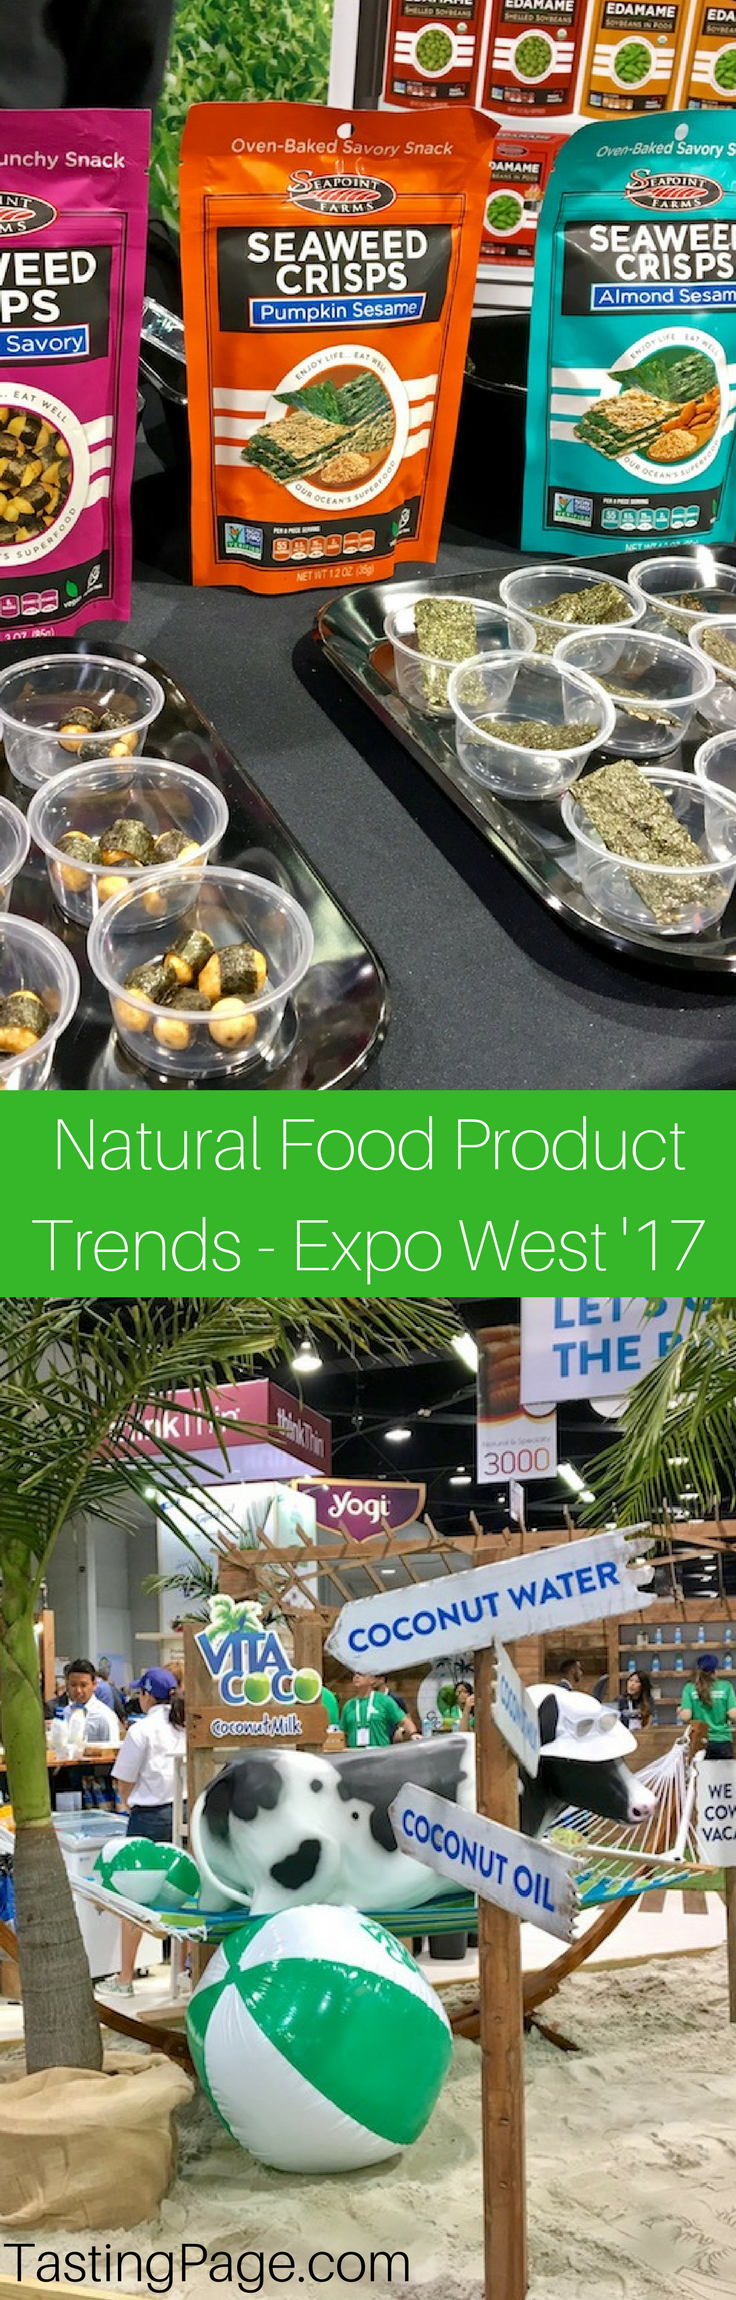 Natural Food Product Trends from Expo West 2017 | TastingPage.com